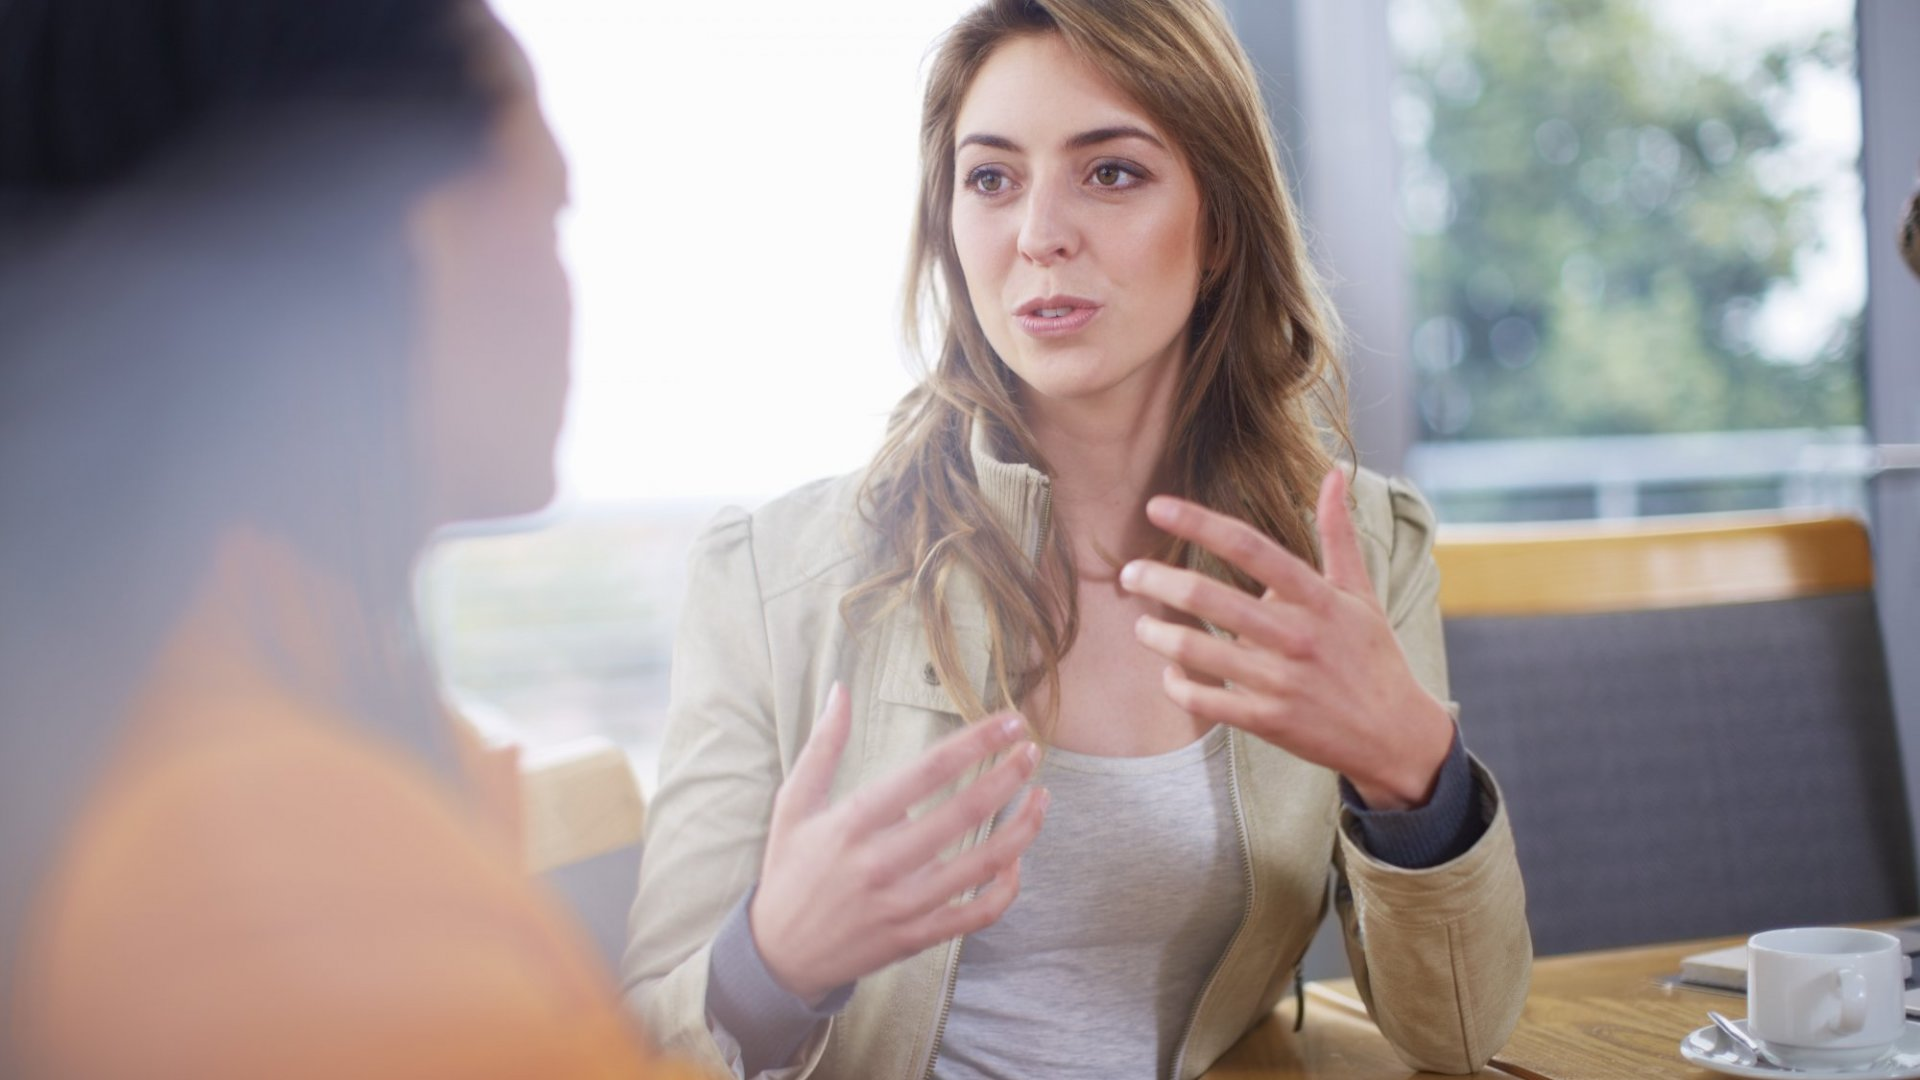 3 Tips to Make You a Better Conversationalist